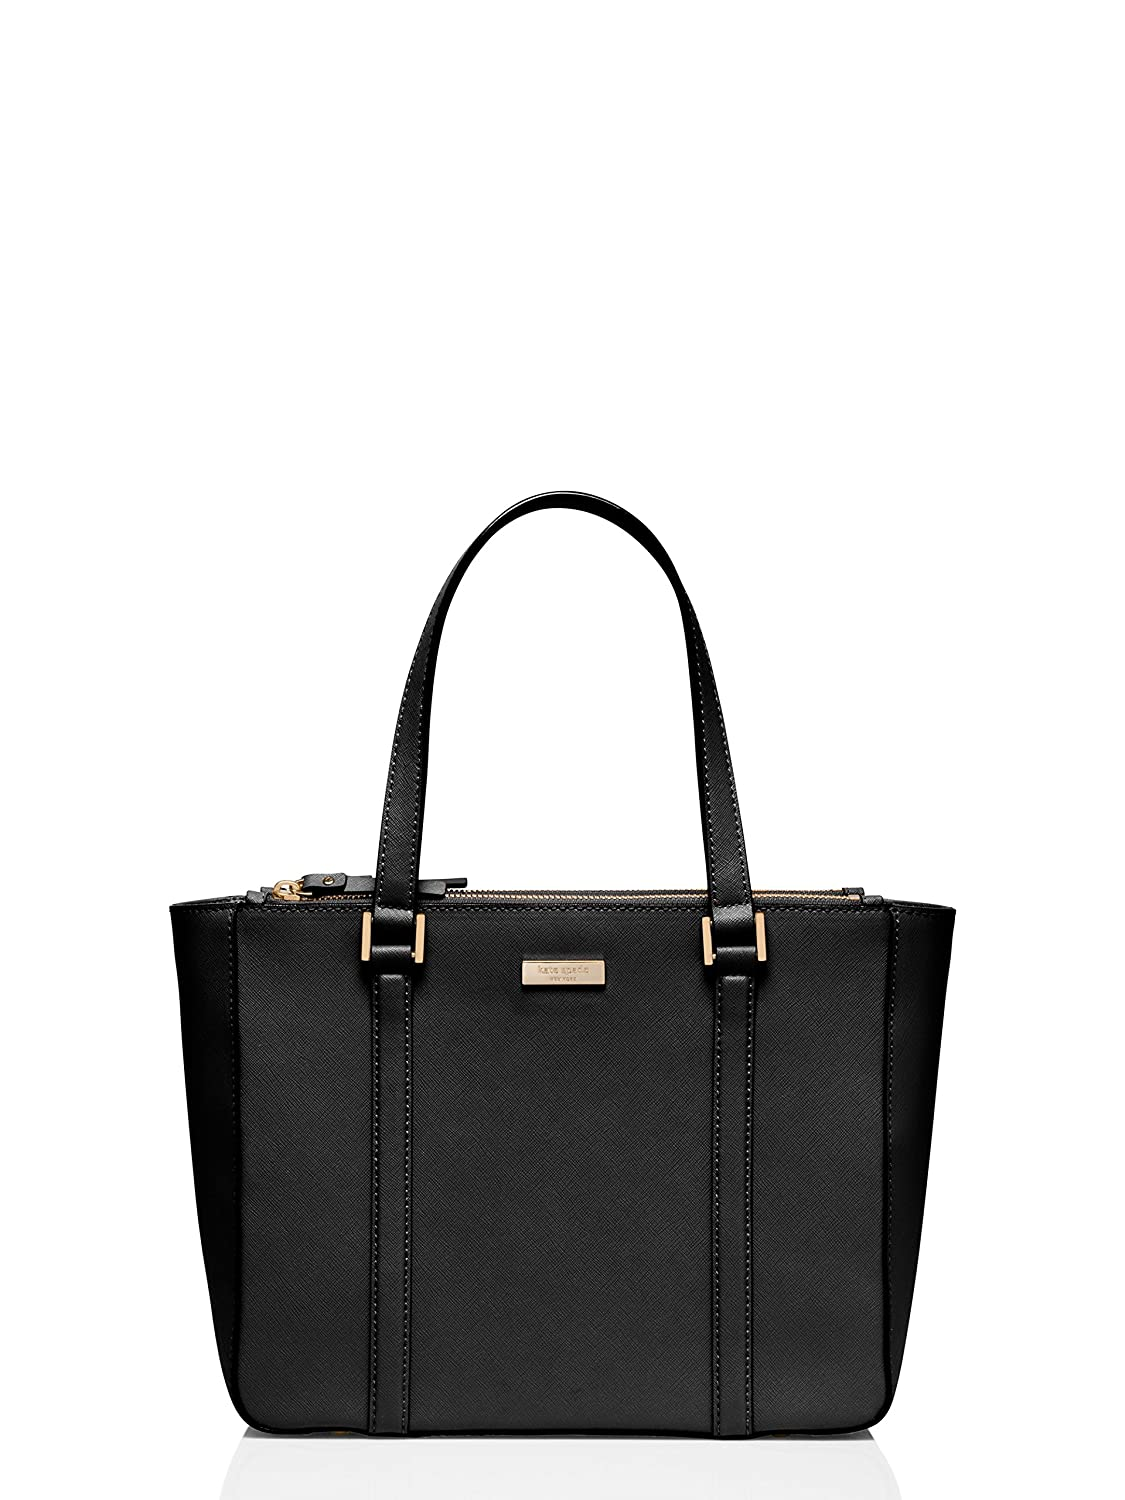 Kate Spade New York Newbury Lane Cadene Leather Tote